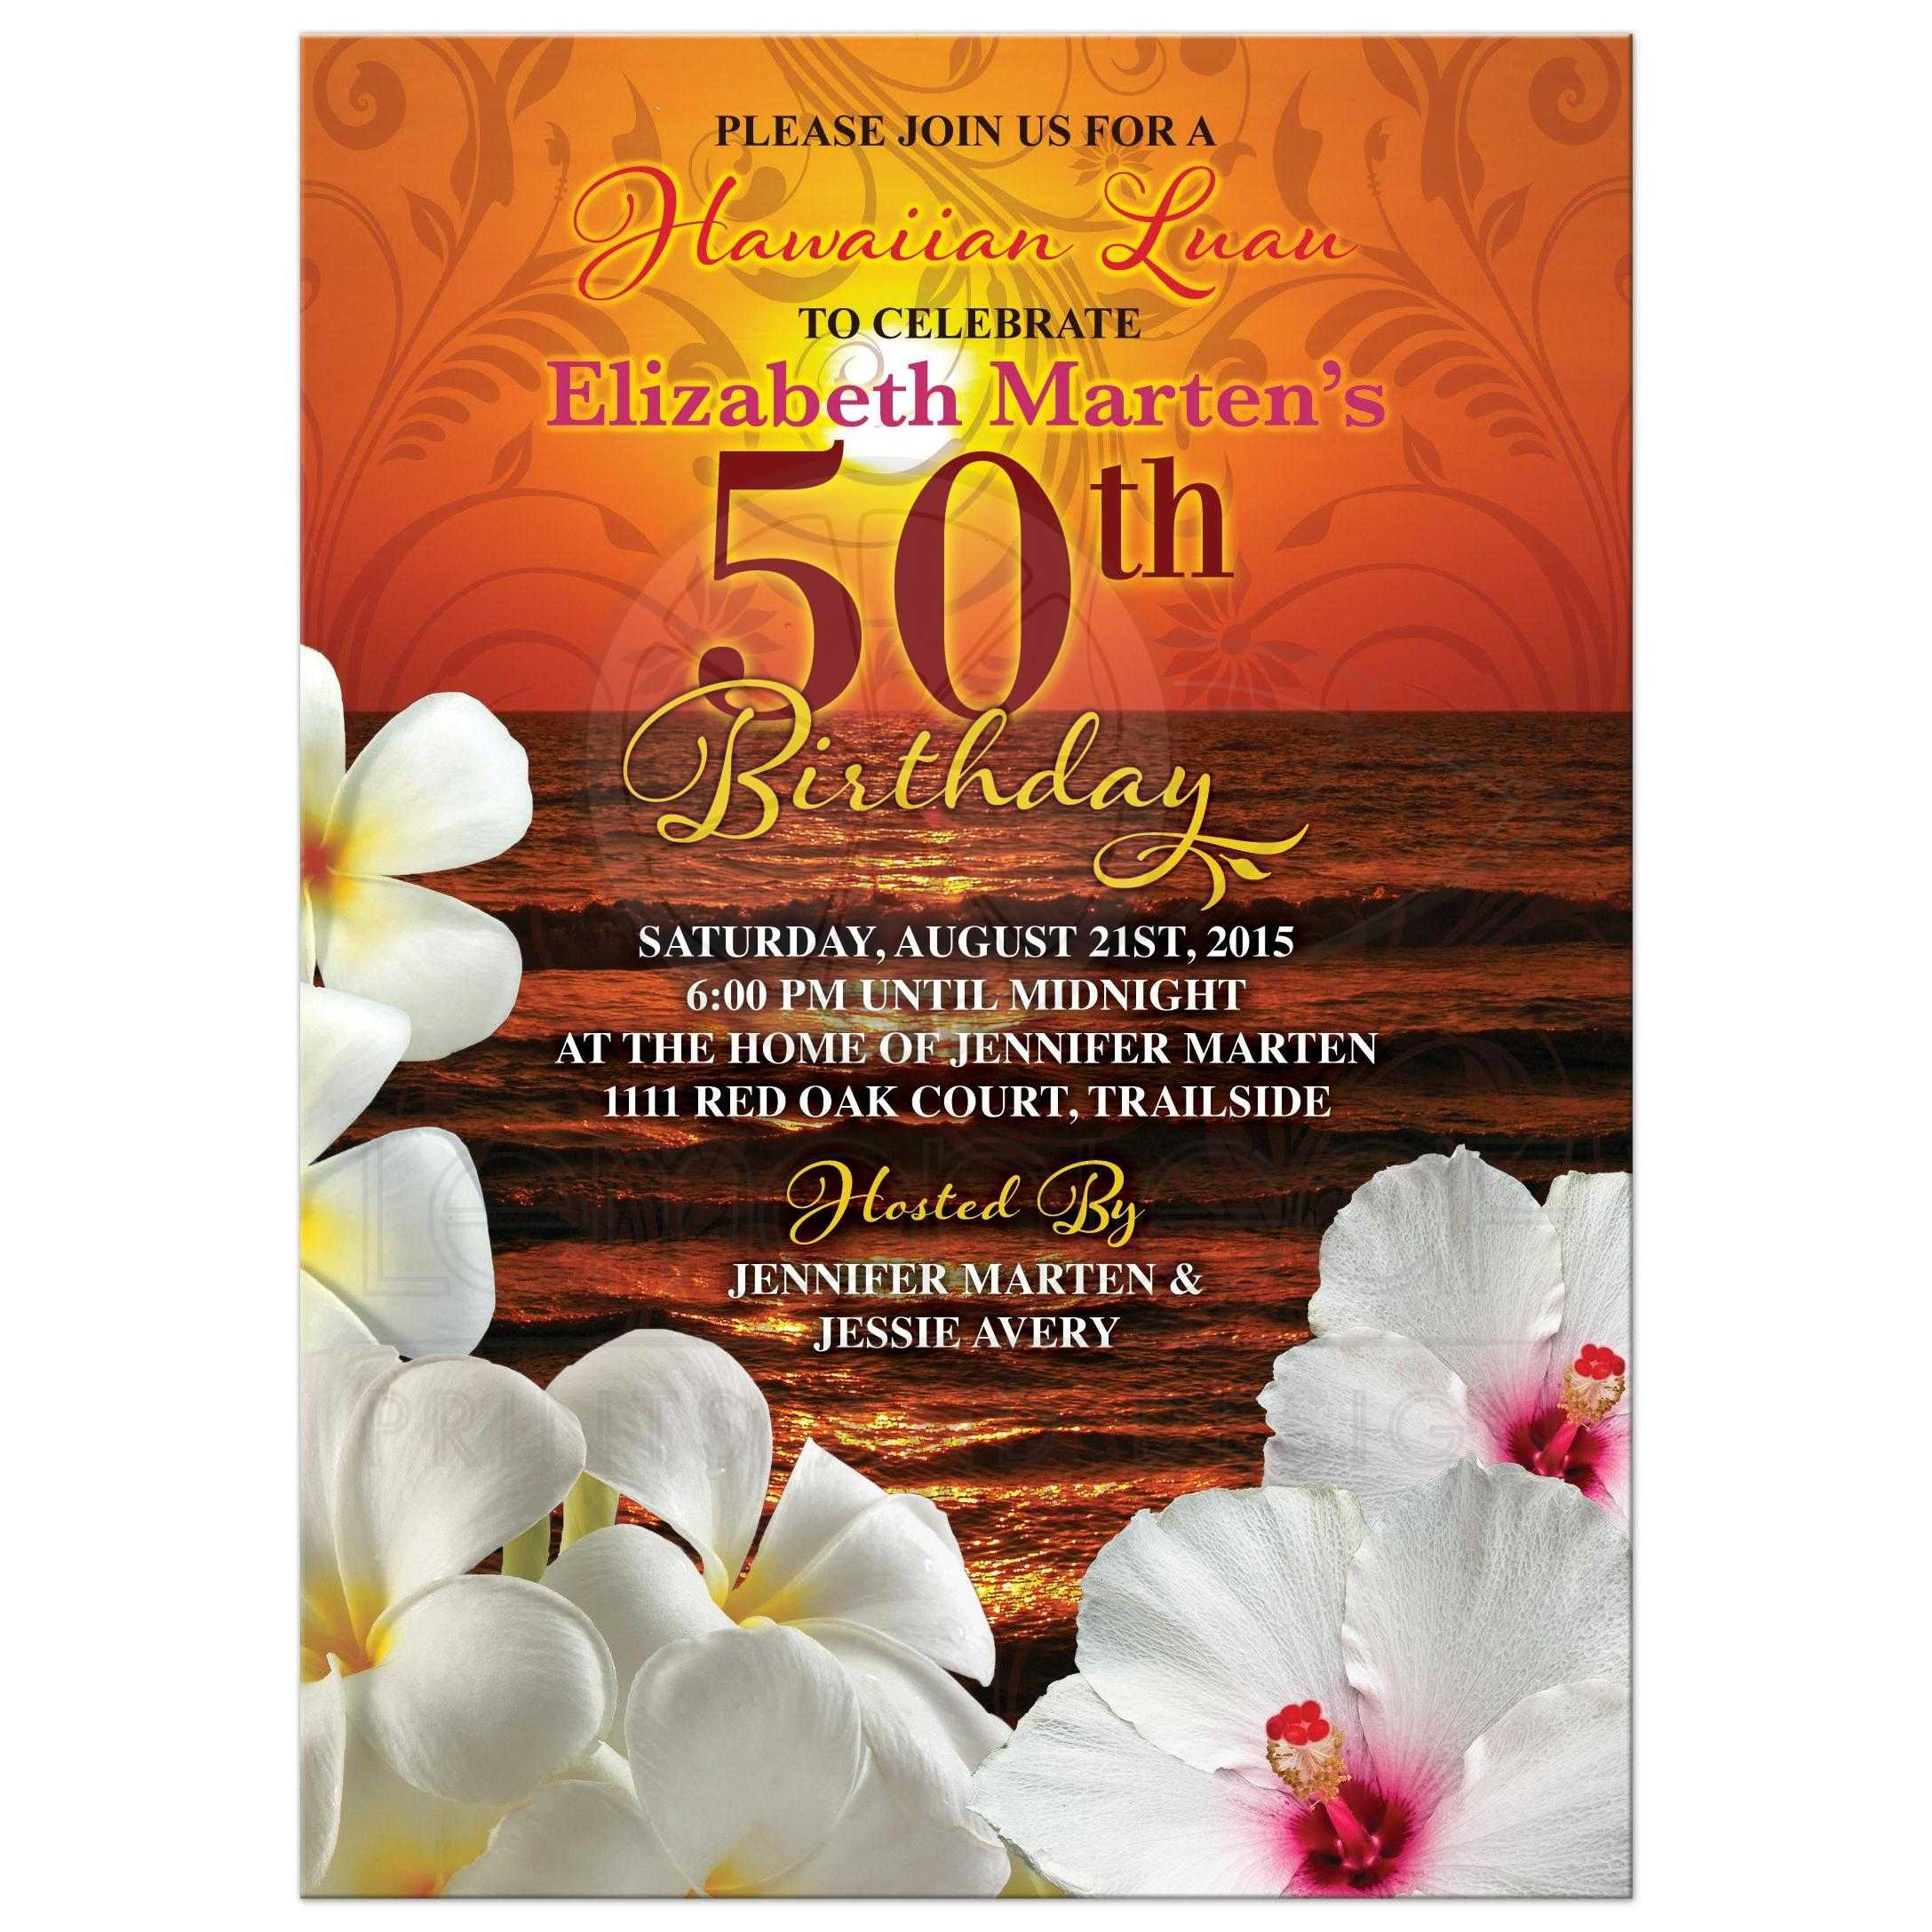 Sunset beach hawaiian luau 50th birthday invitation beautiful sunset beach tropical hawaiian luau 50th birthday party invitation front filmwisefo